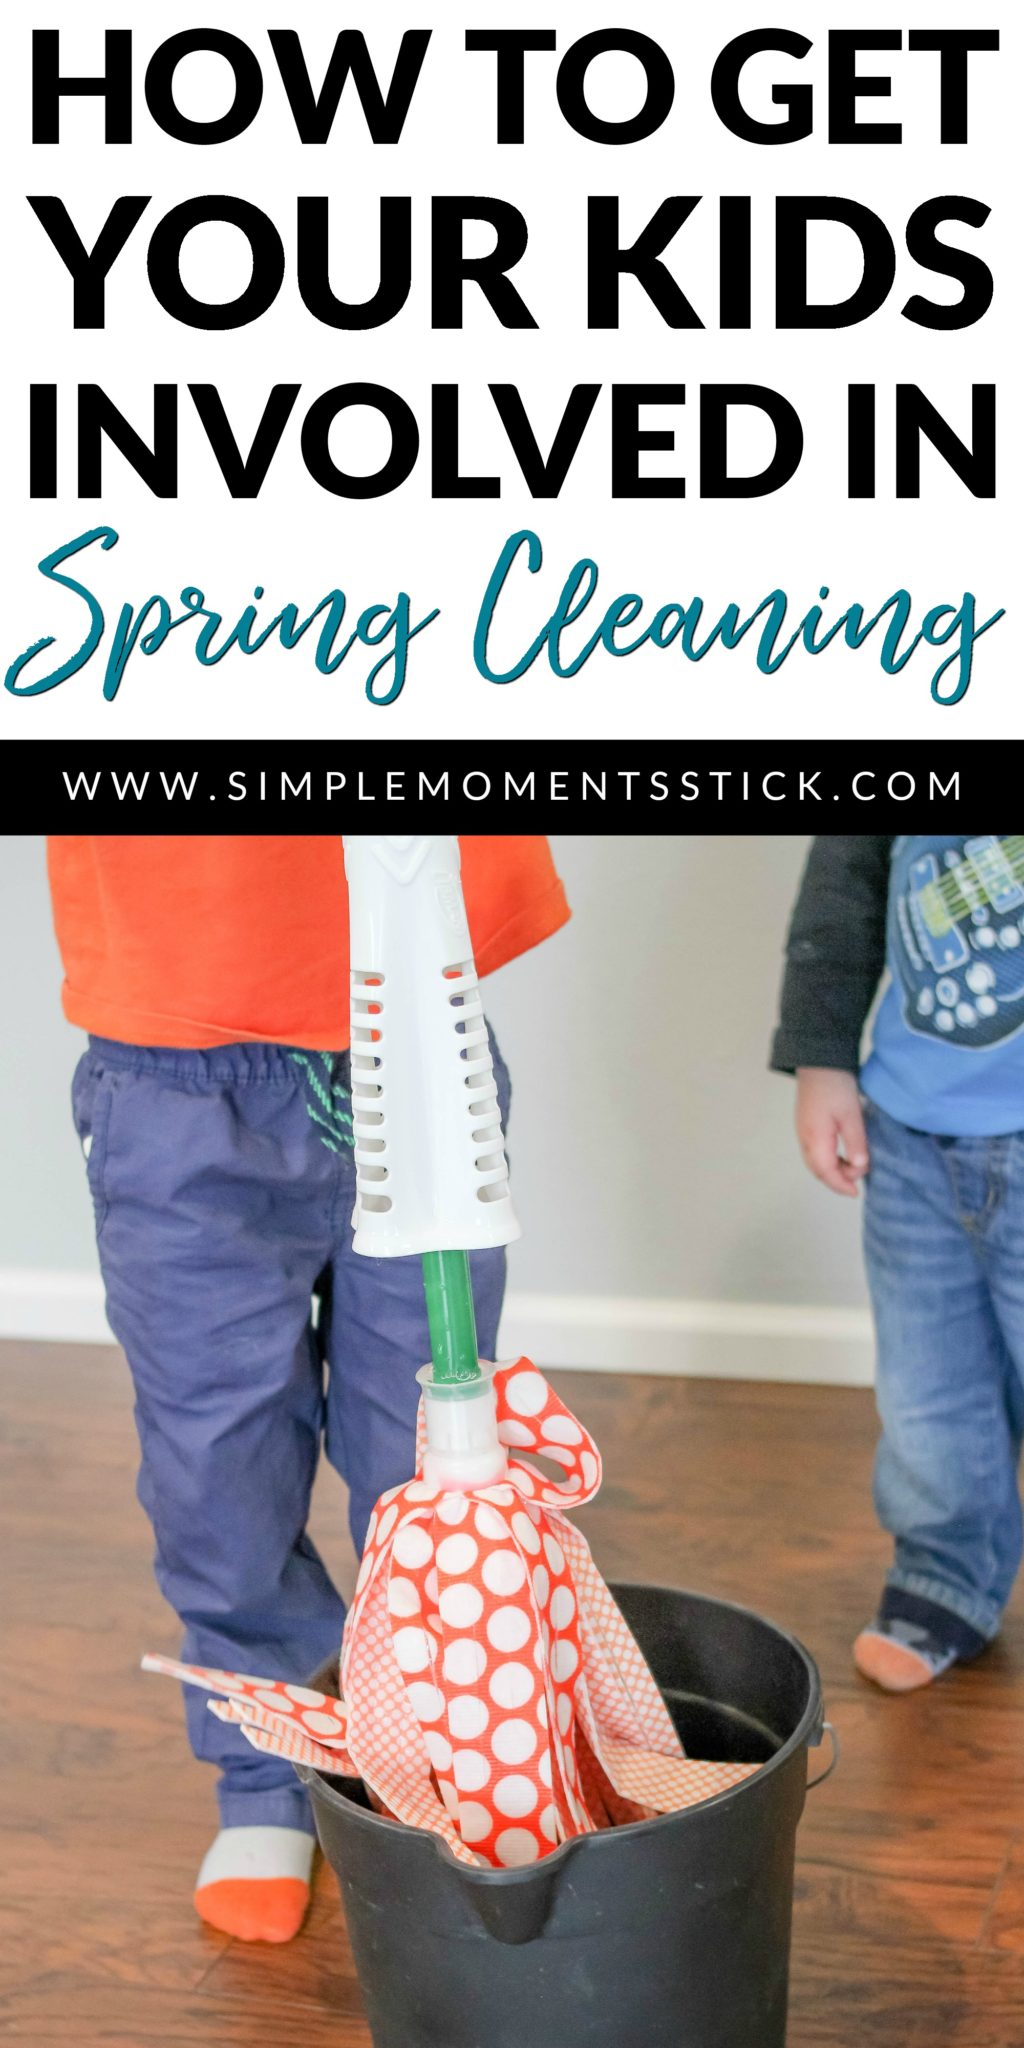 Wondering how to get your kids involved in spring cleaning? This post is for you!